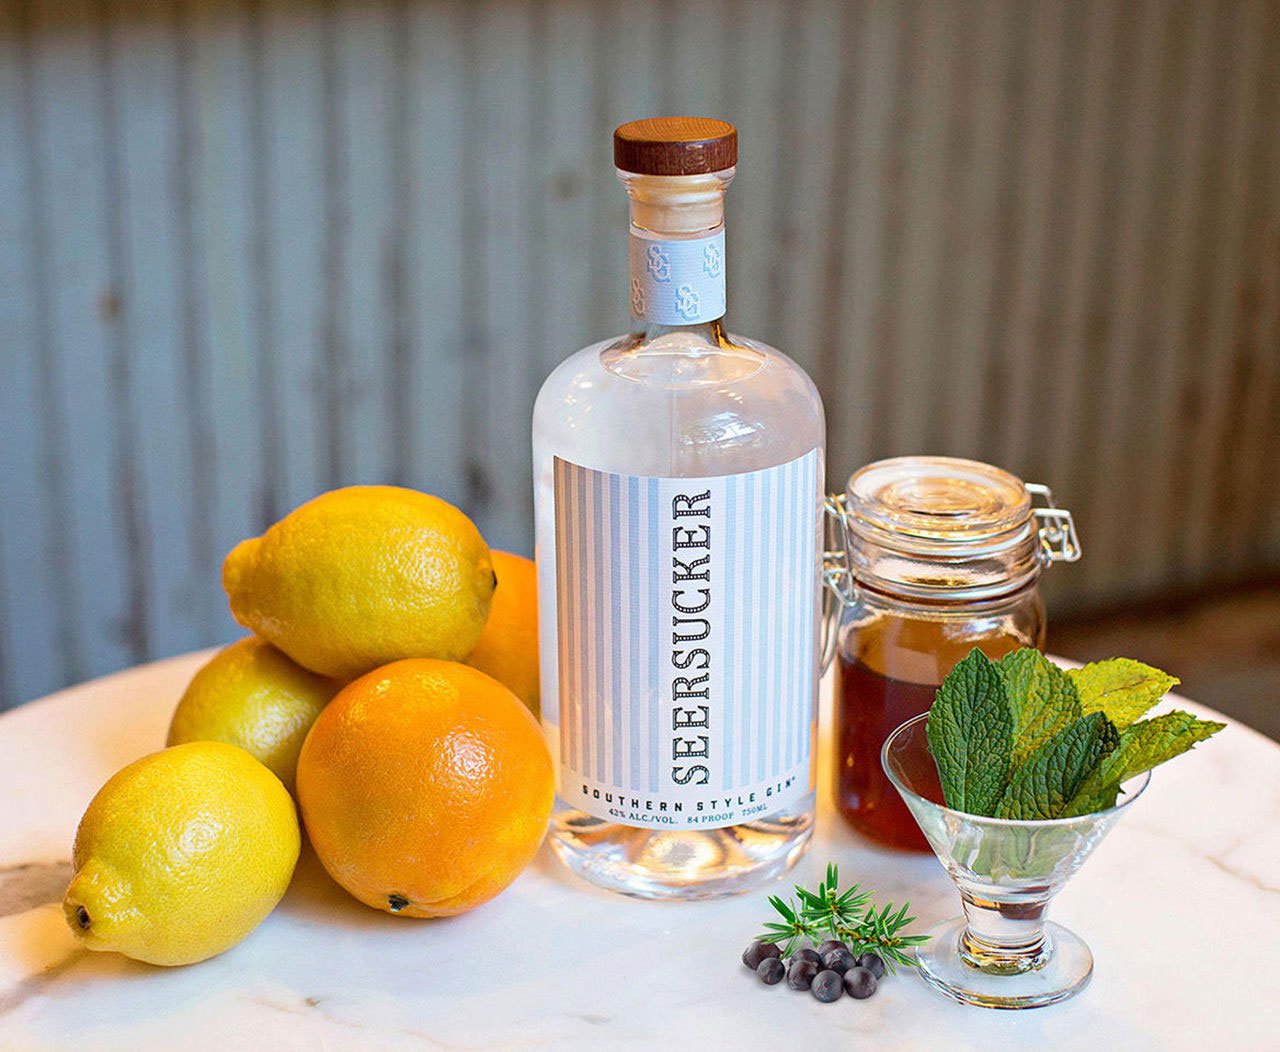 Southern Style Gin